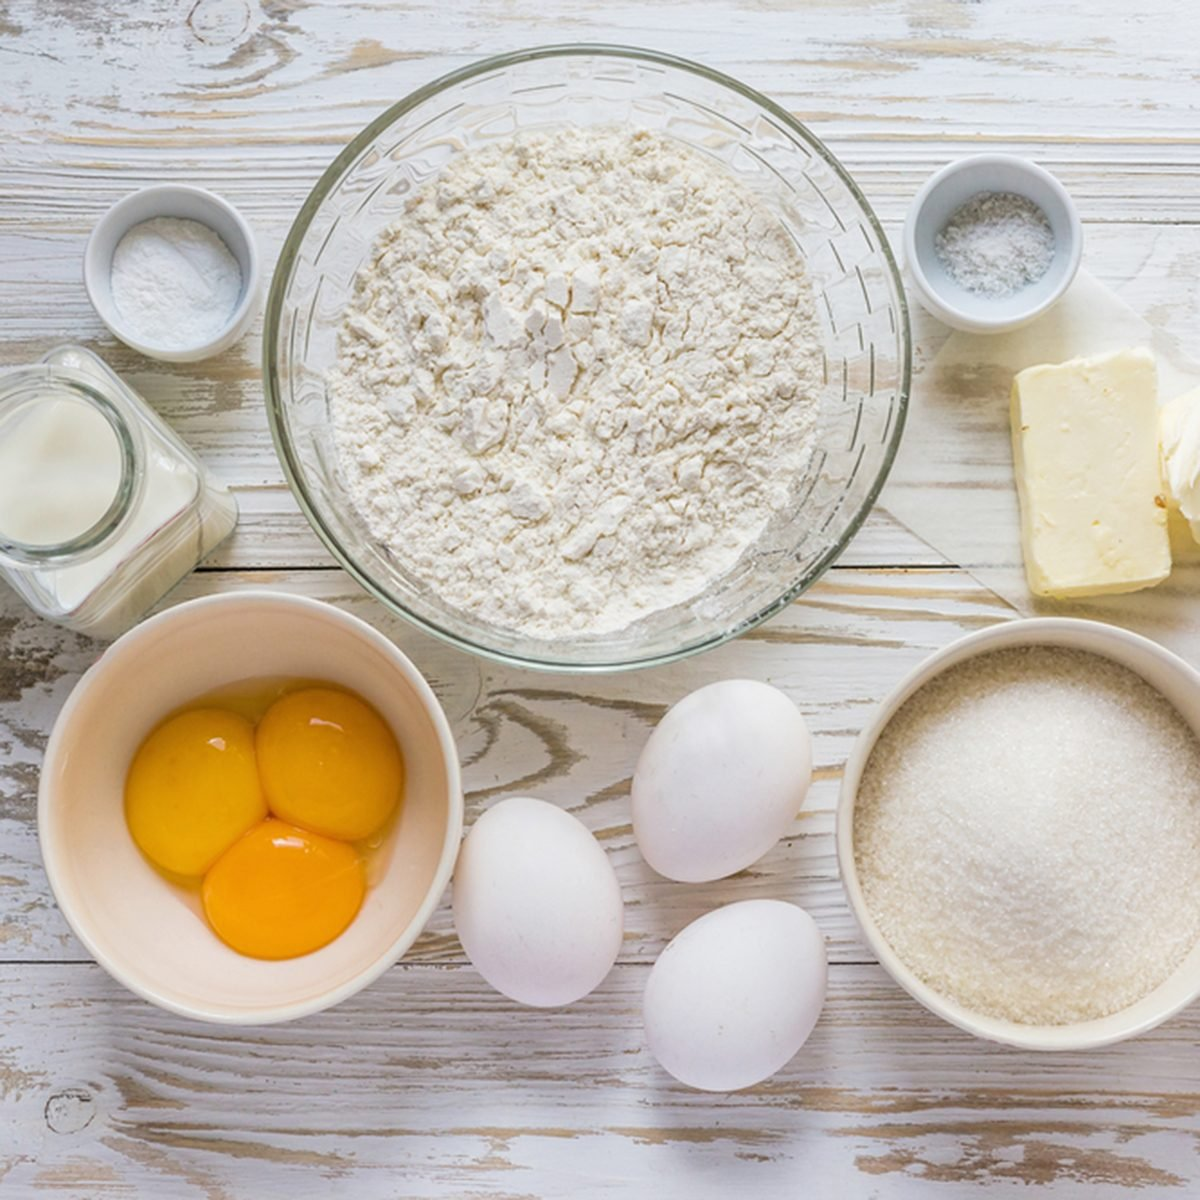 The Baking Ingredients You Should Always Have On Hand